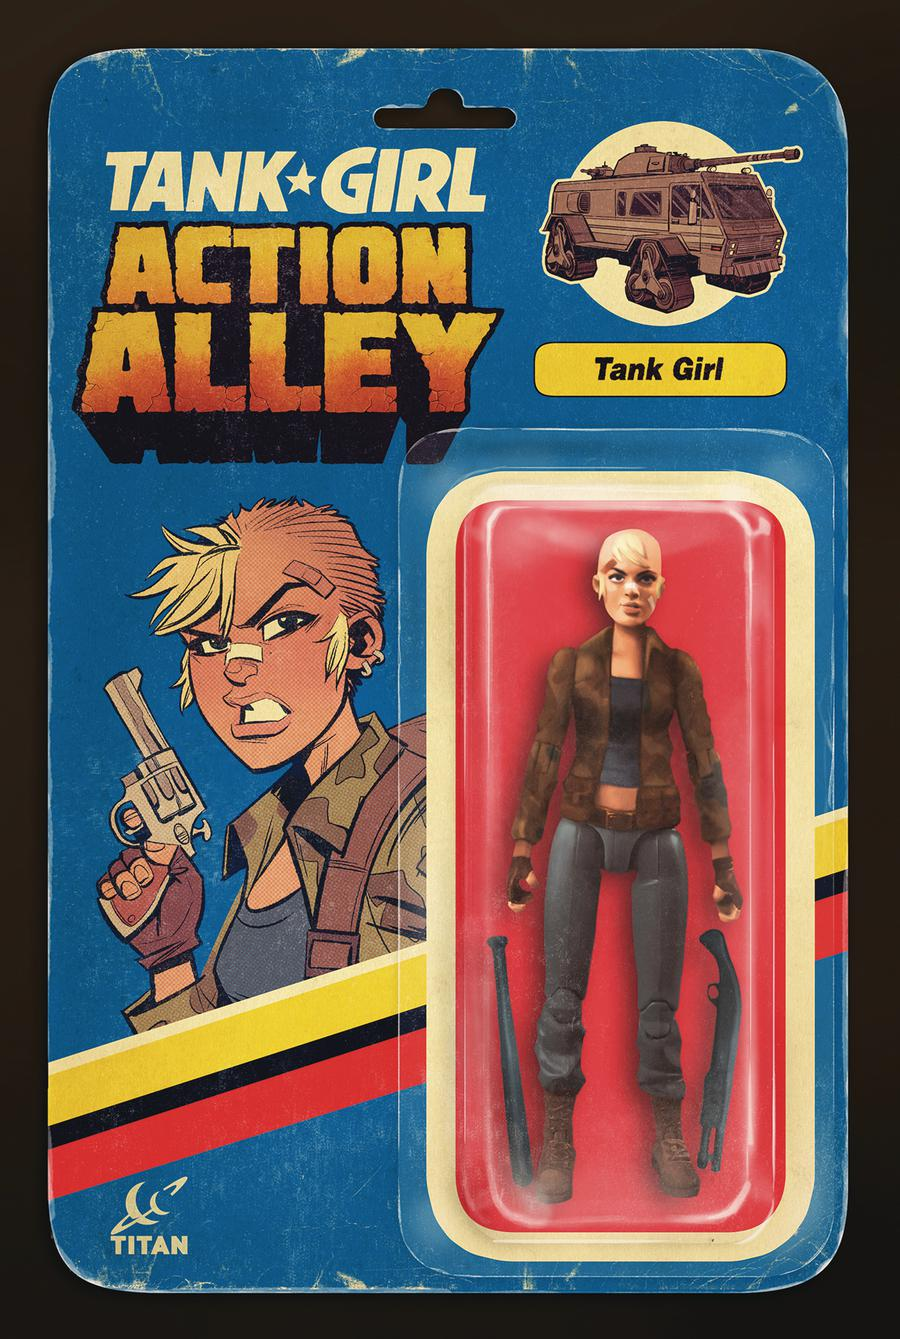 Tank Girl Vol 3 #1 Action Alley Cover B Variant Brett Parson Action Figure Cover